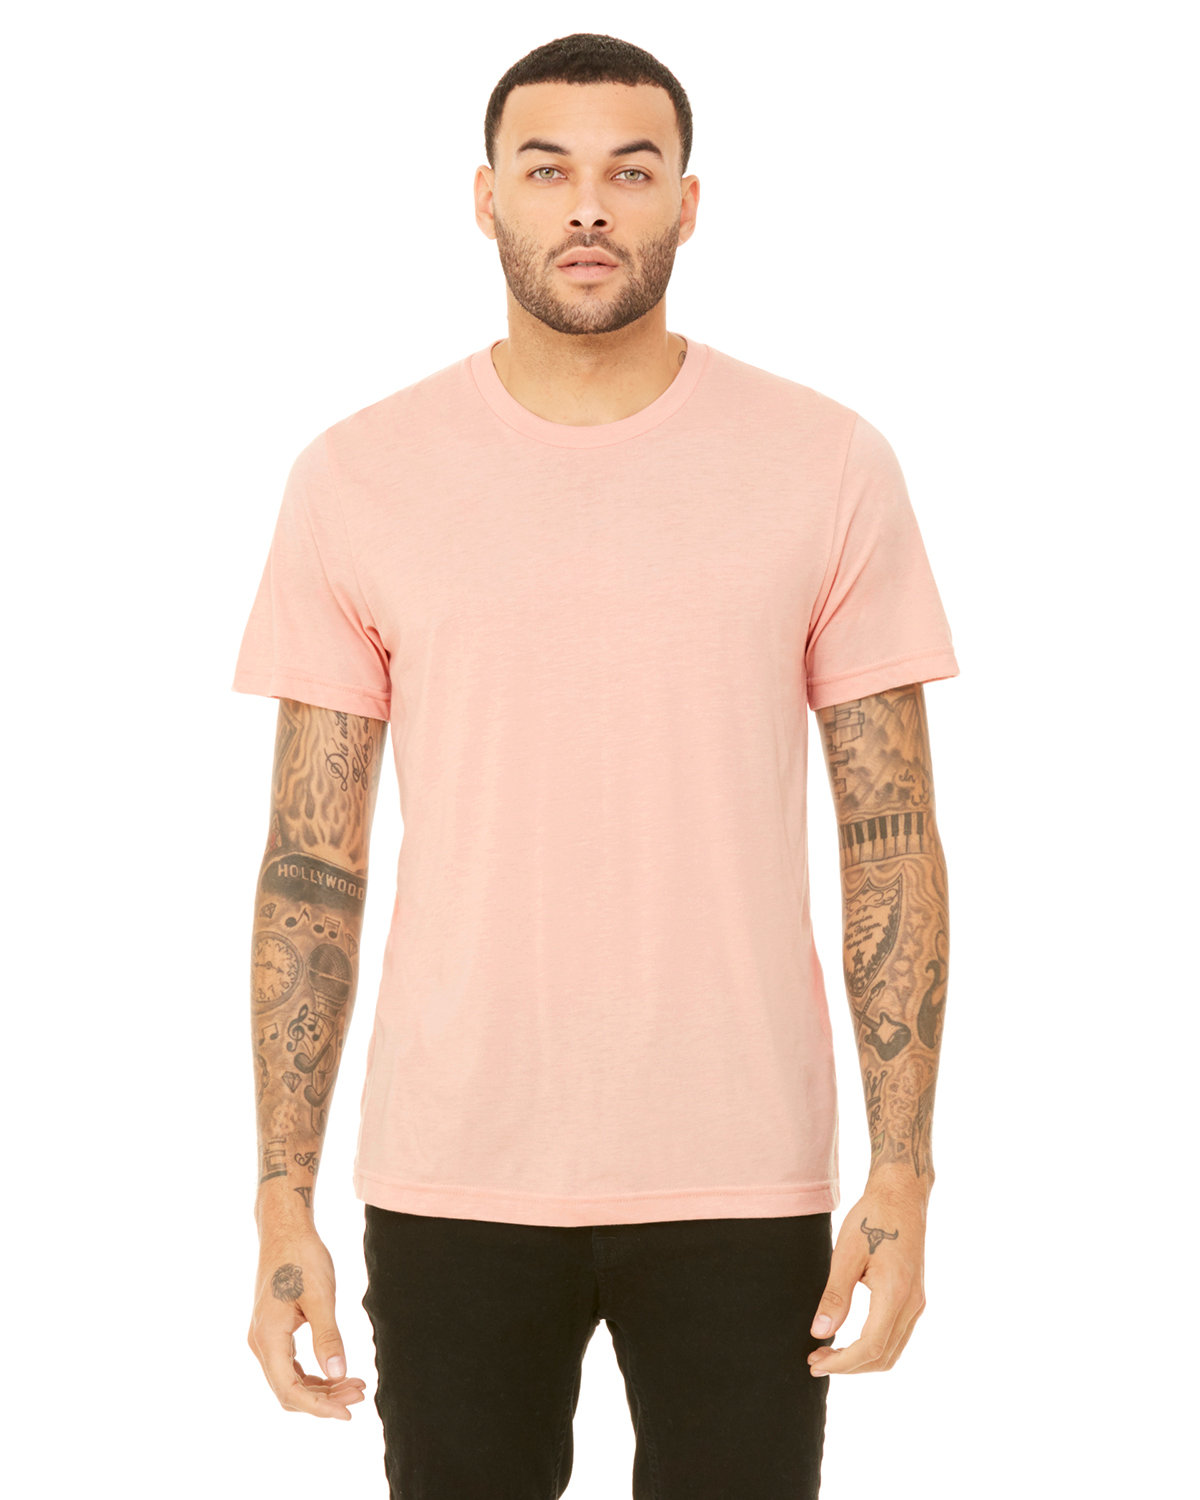 Bella + Canvas Unisex Heather CVC T-Shirt HEATHER PEACH